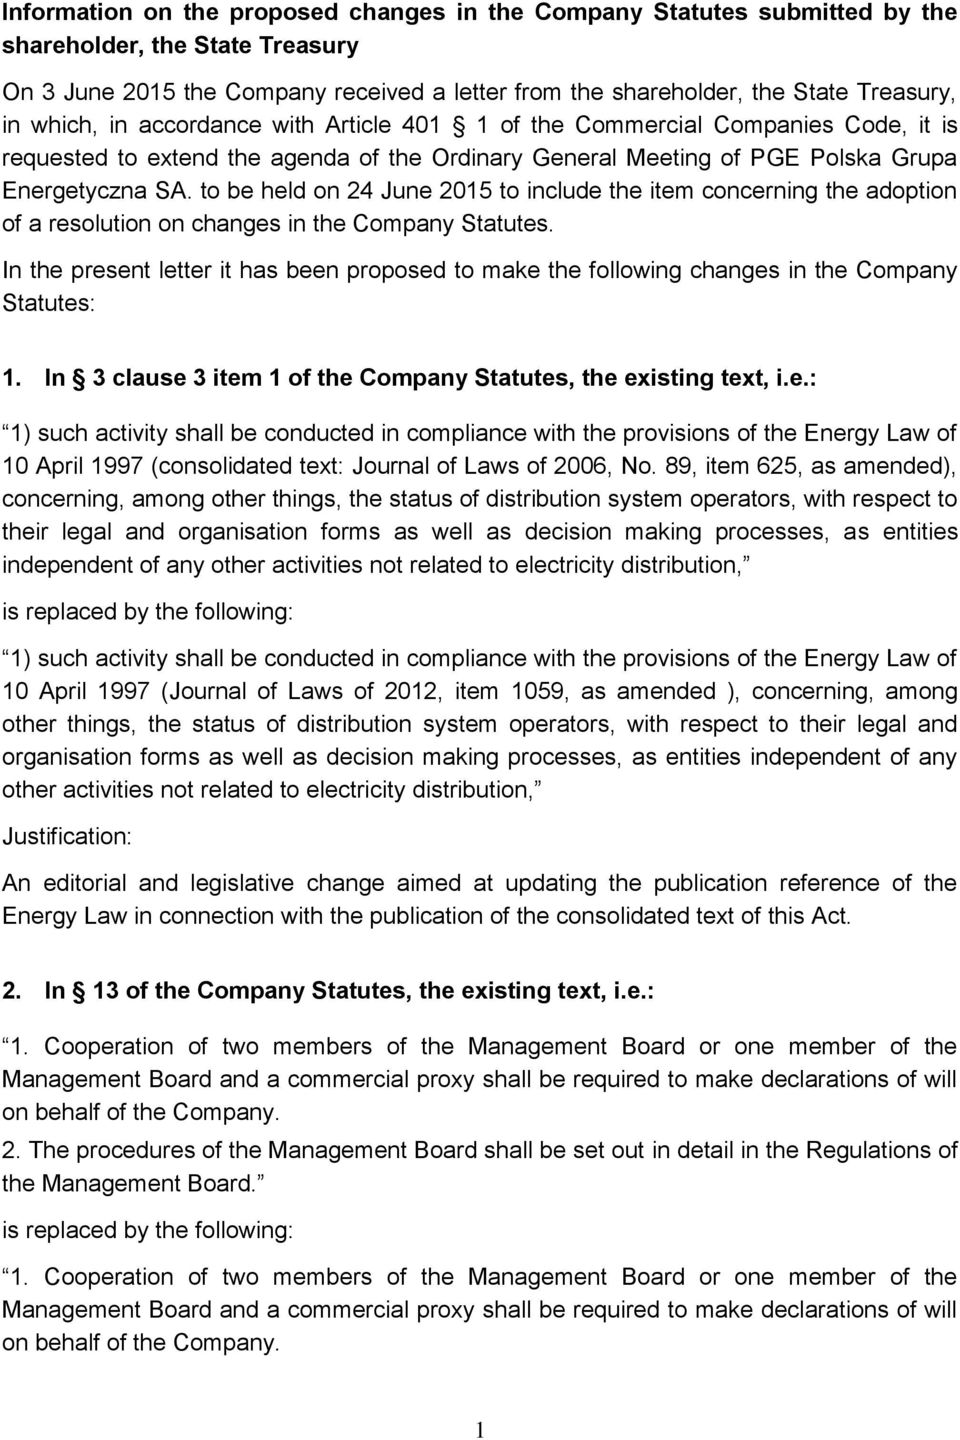 to be held on 24 June 2015 to include the item concerning the adoption of a resolution on changes in the Company Statutes.